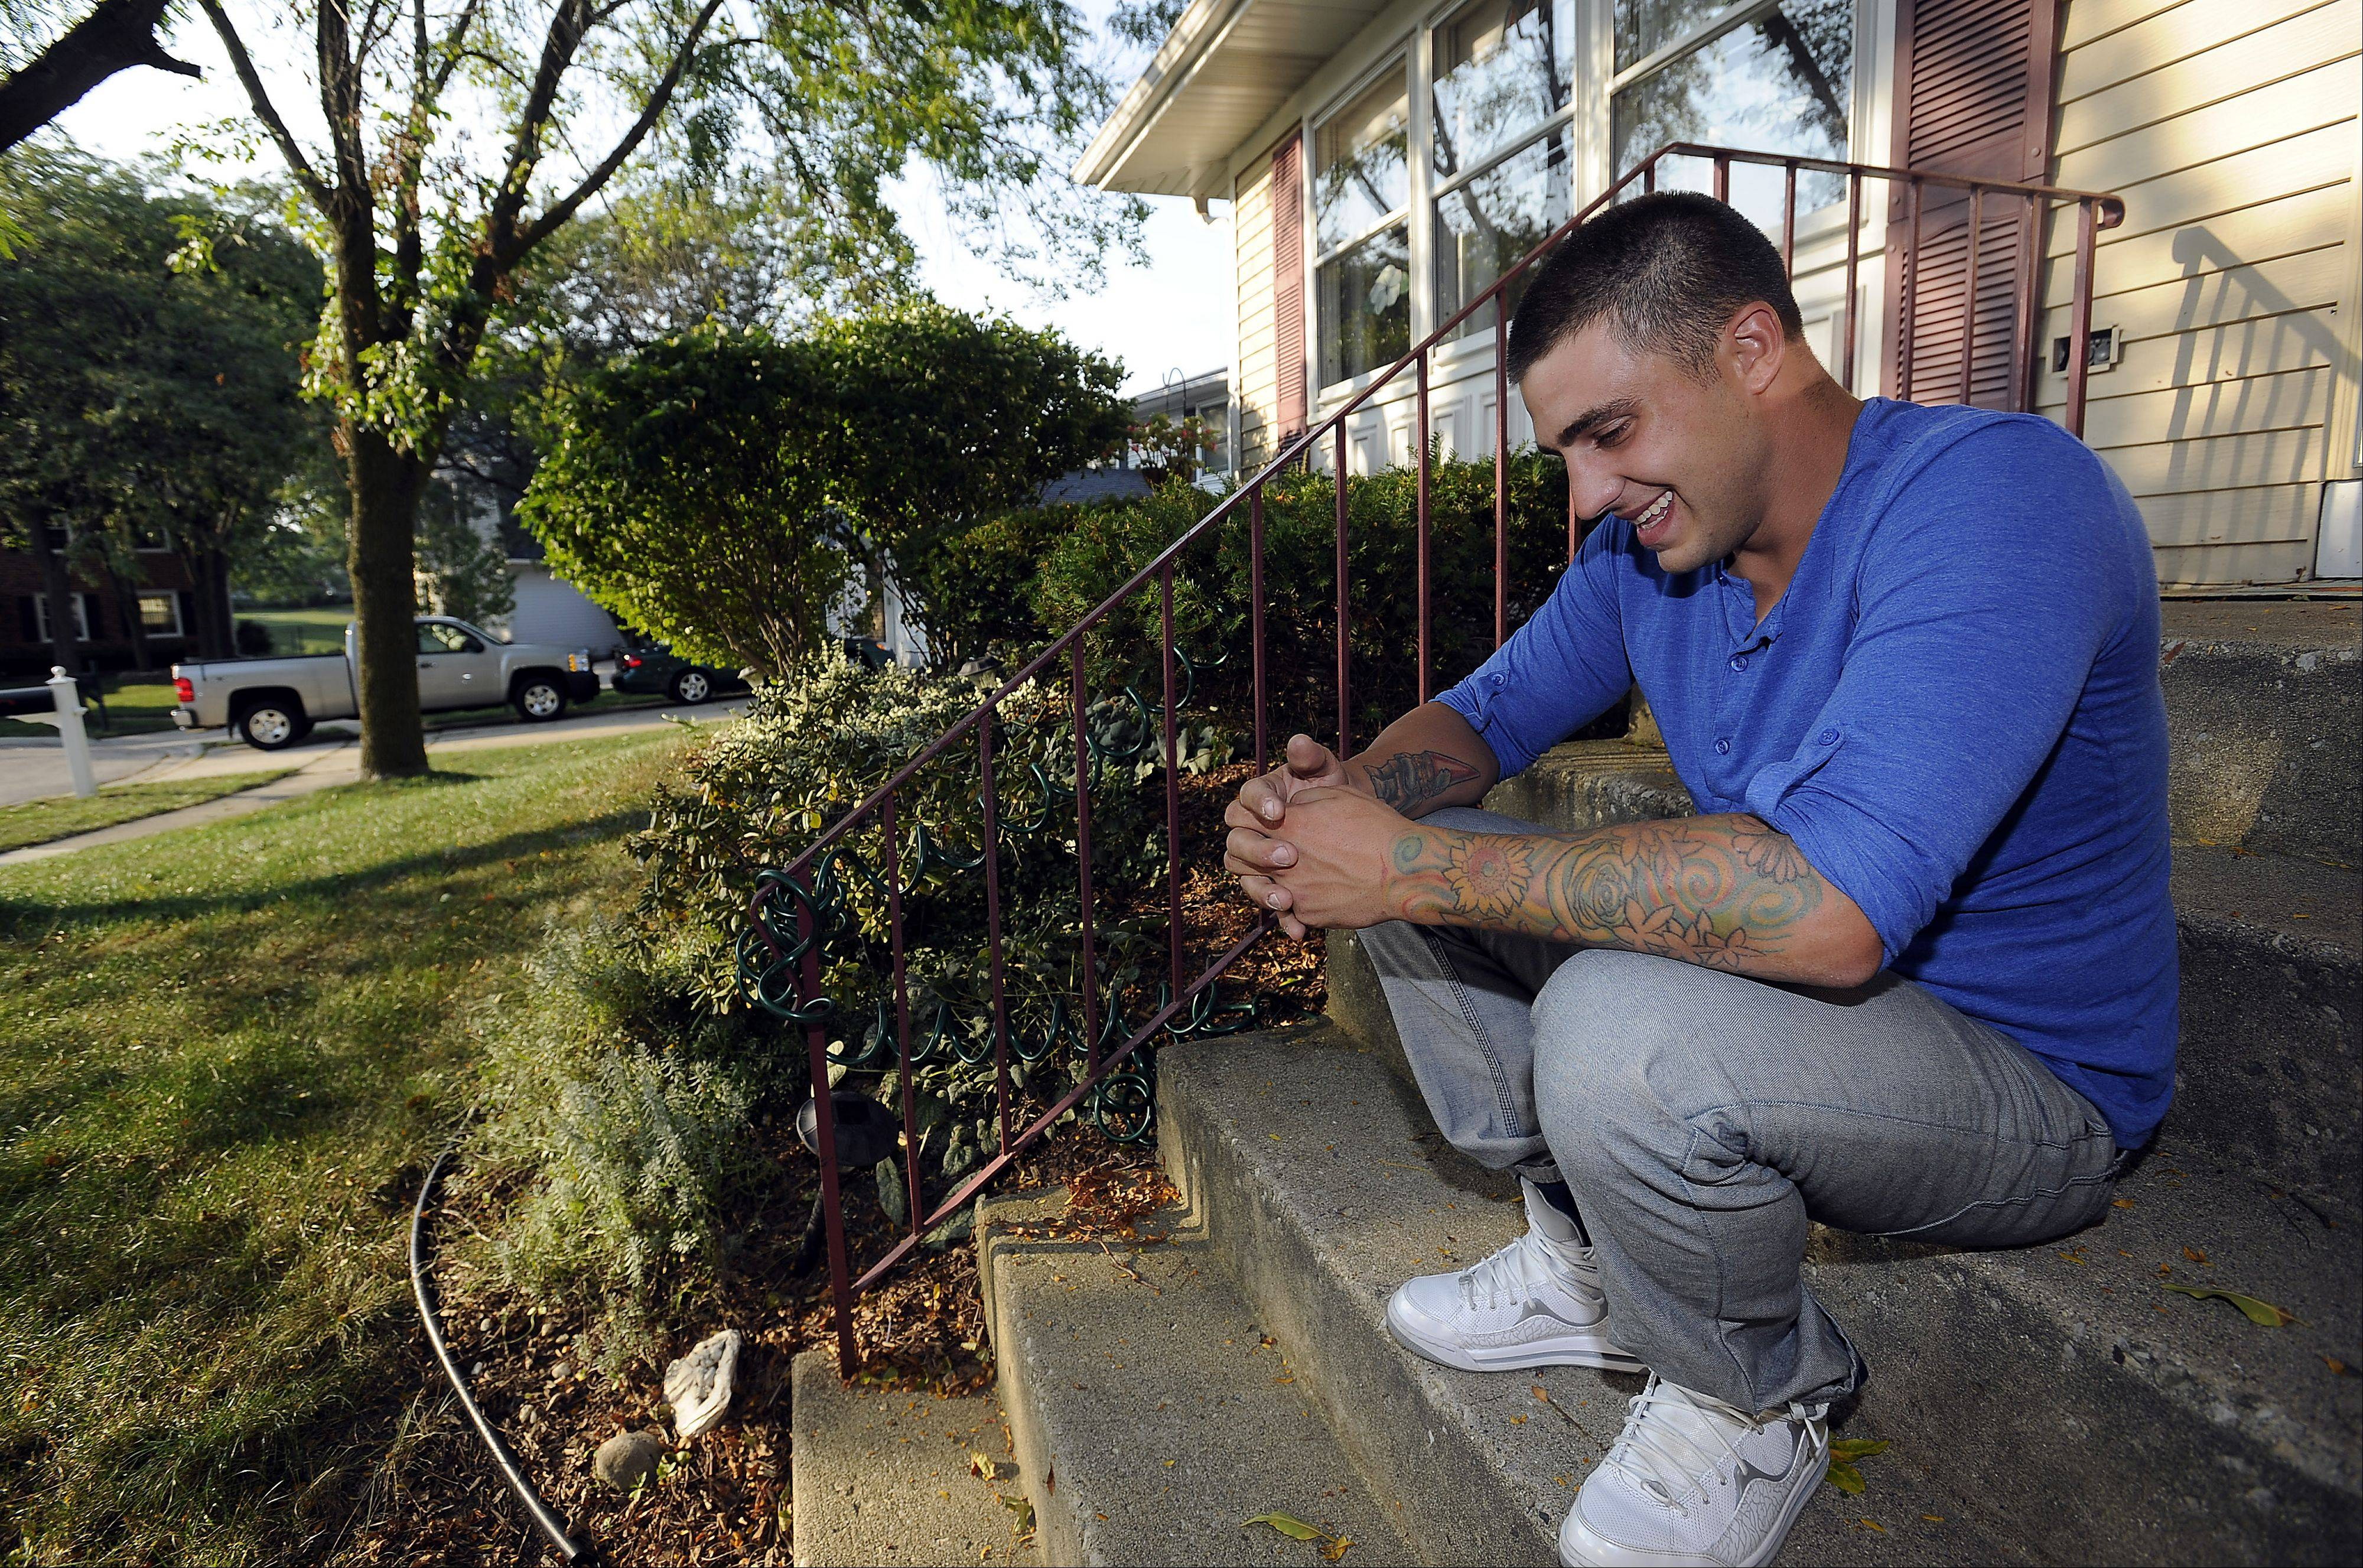 Devin Reed of Hoffman Estates sits on the front porch of his parents' home and smiles as he tells his story about how, at age 18, he started using heroin. Now, after almost four years of being clean, he speaks to others about kicking their habit. Today he is glad he is alive to help others.